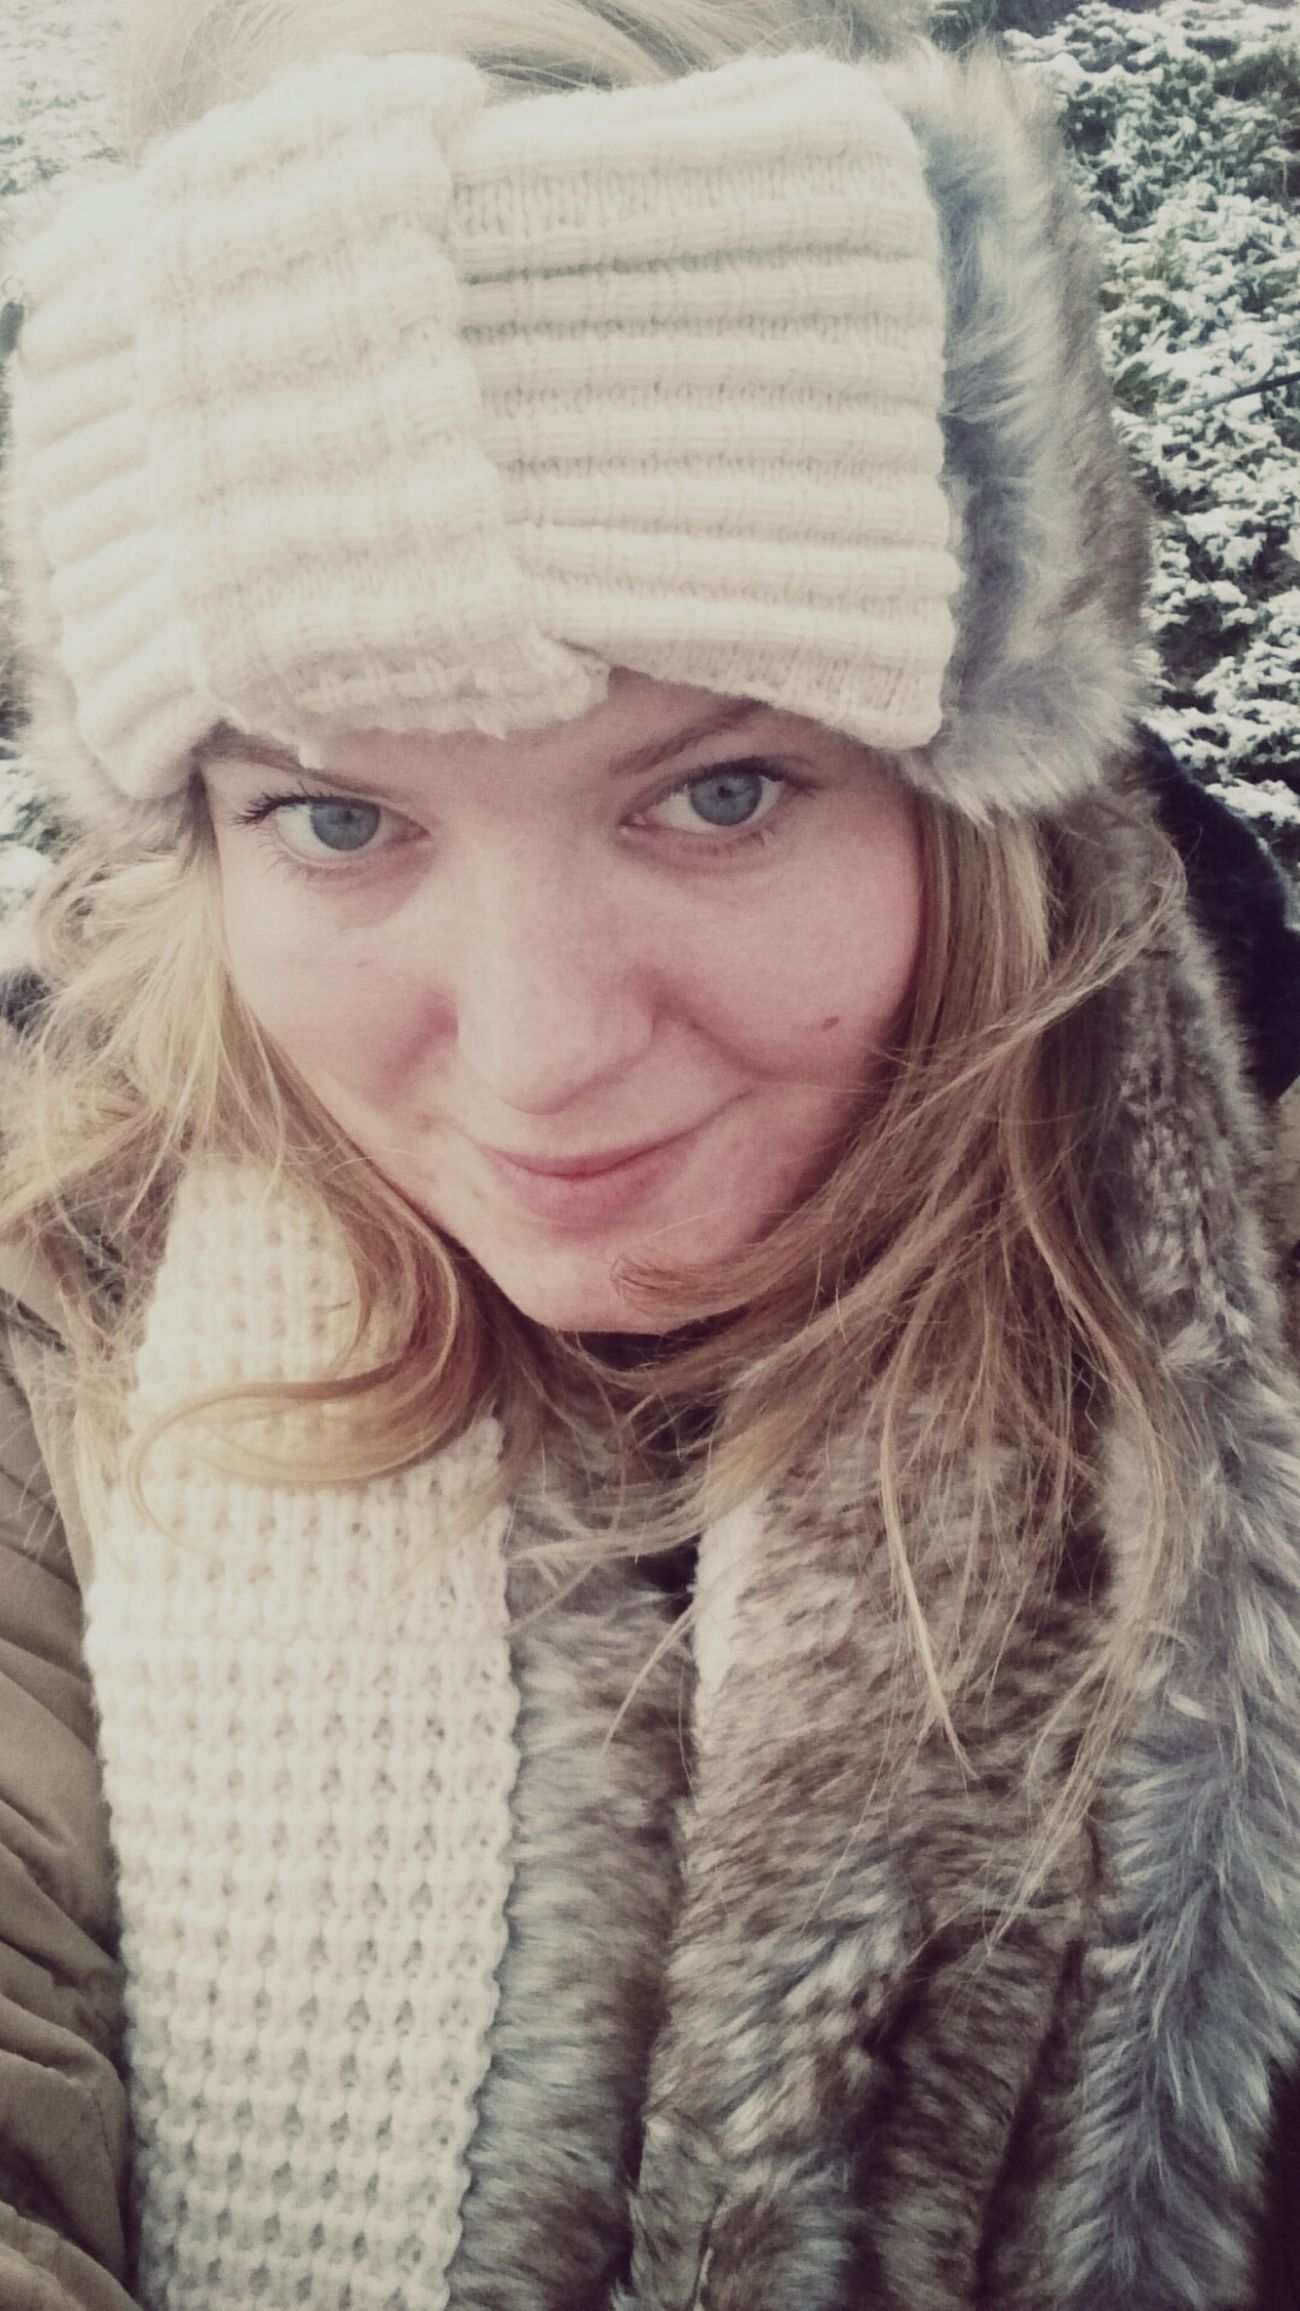 Looking a bit pale in the snow xx